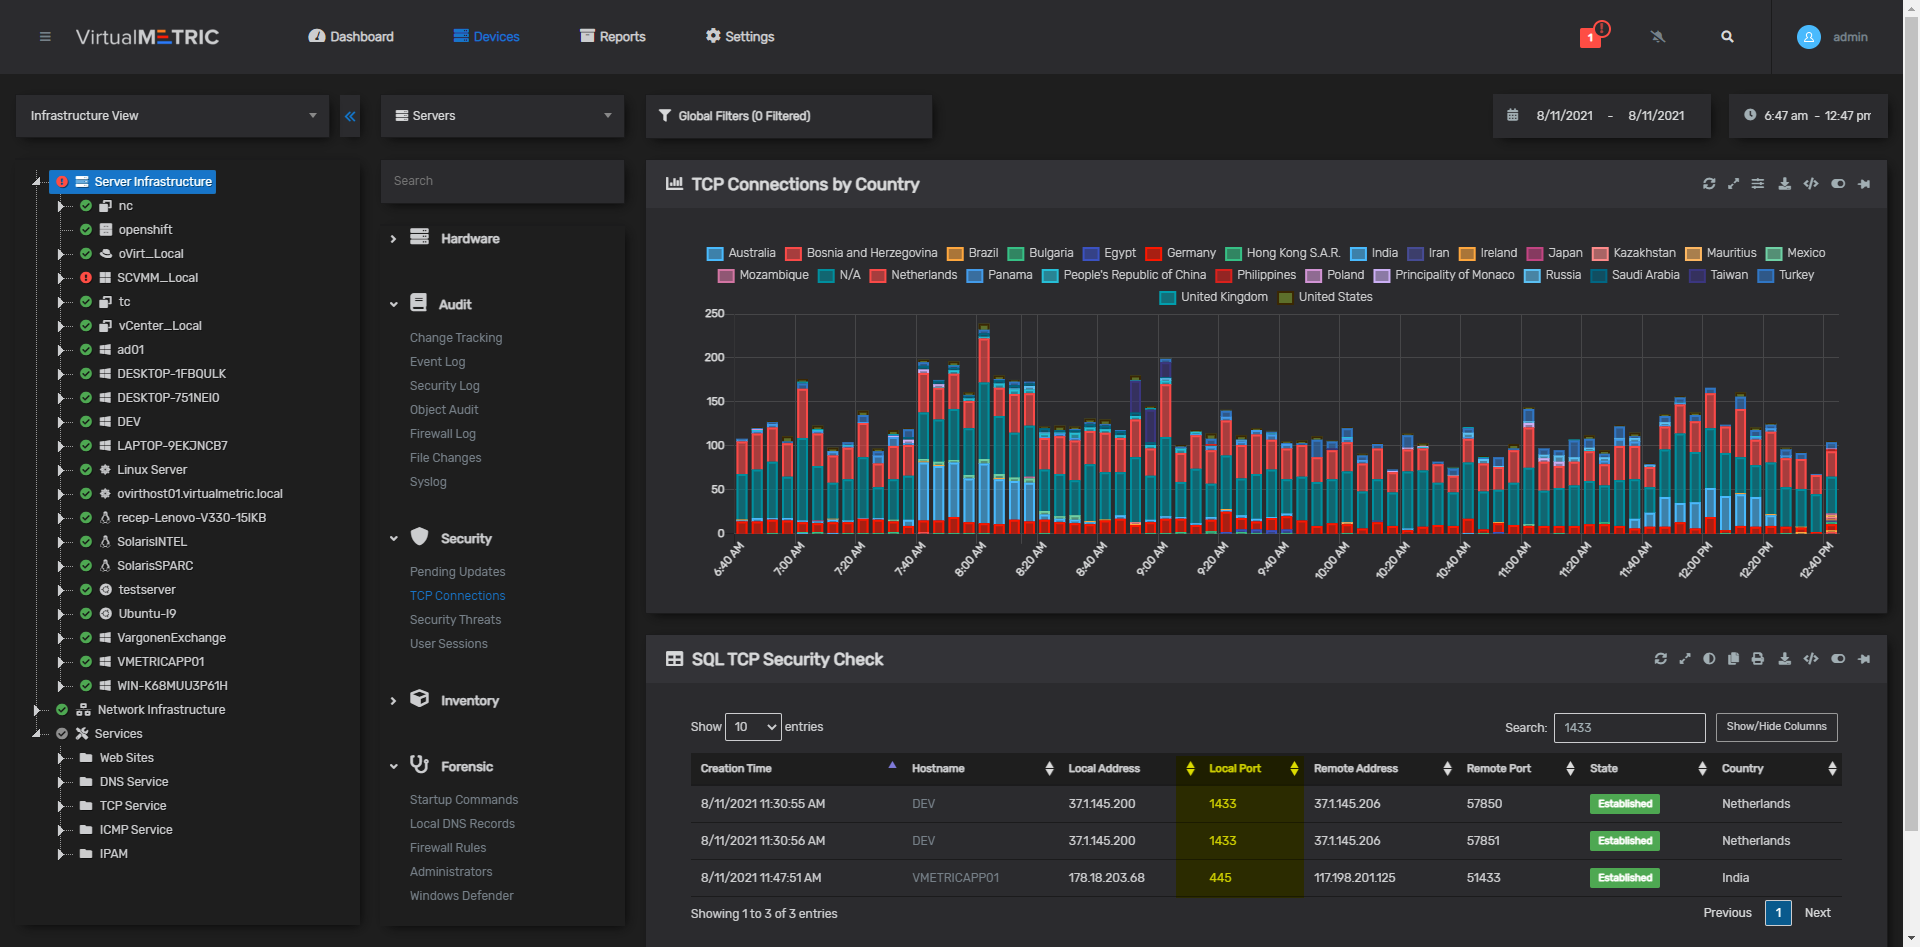 Real-time Security Analysis and Reports